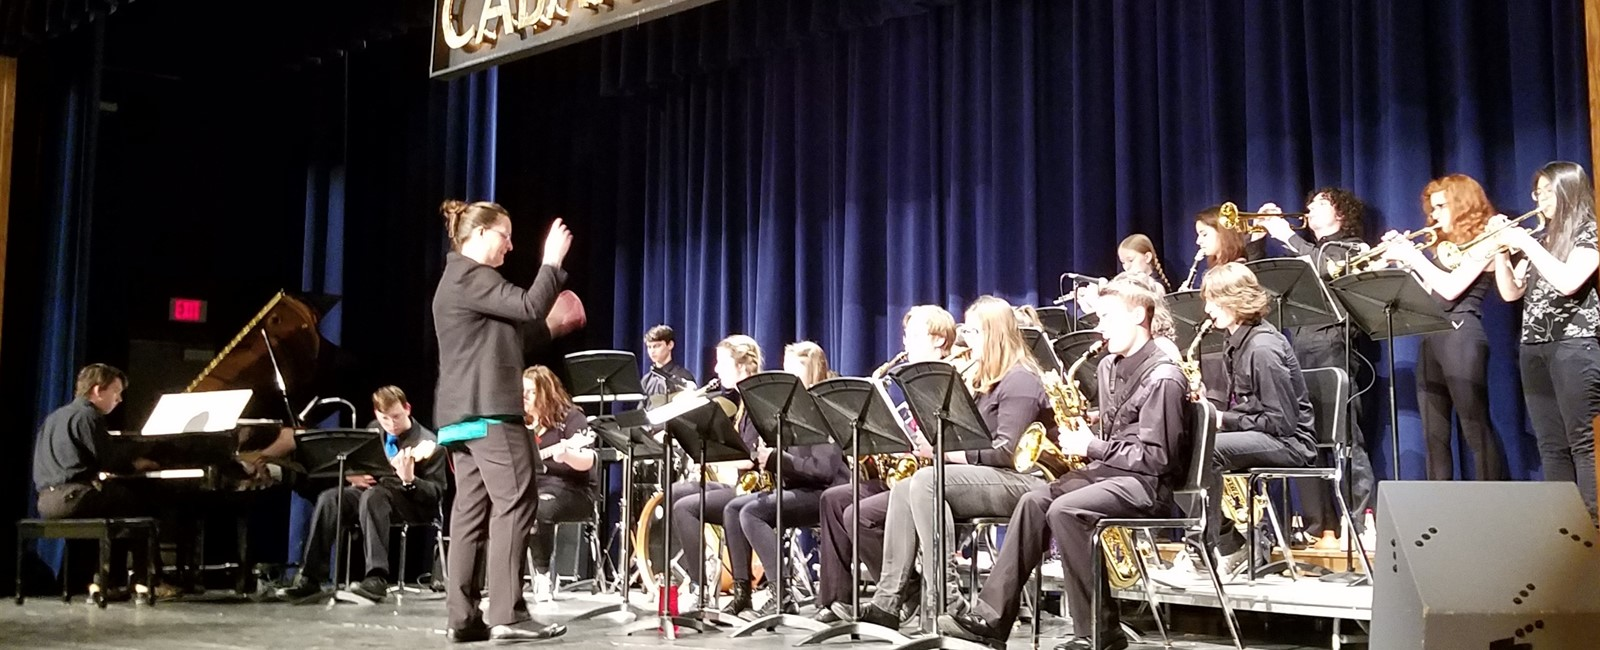 Jazz Band at Cabaret 2018